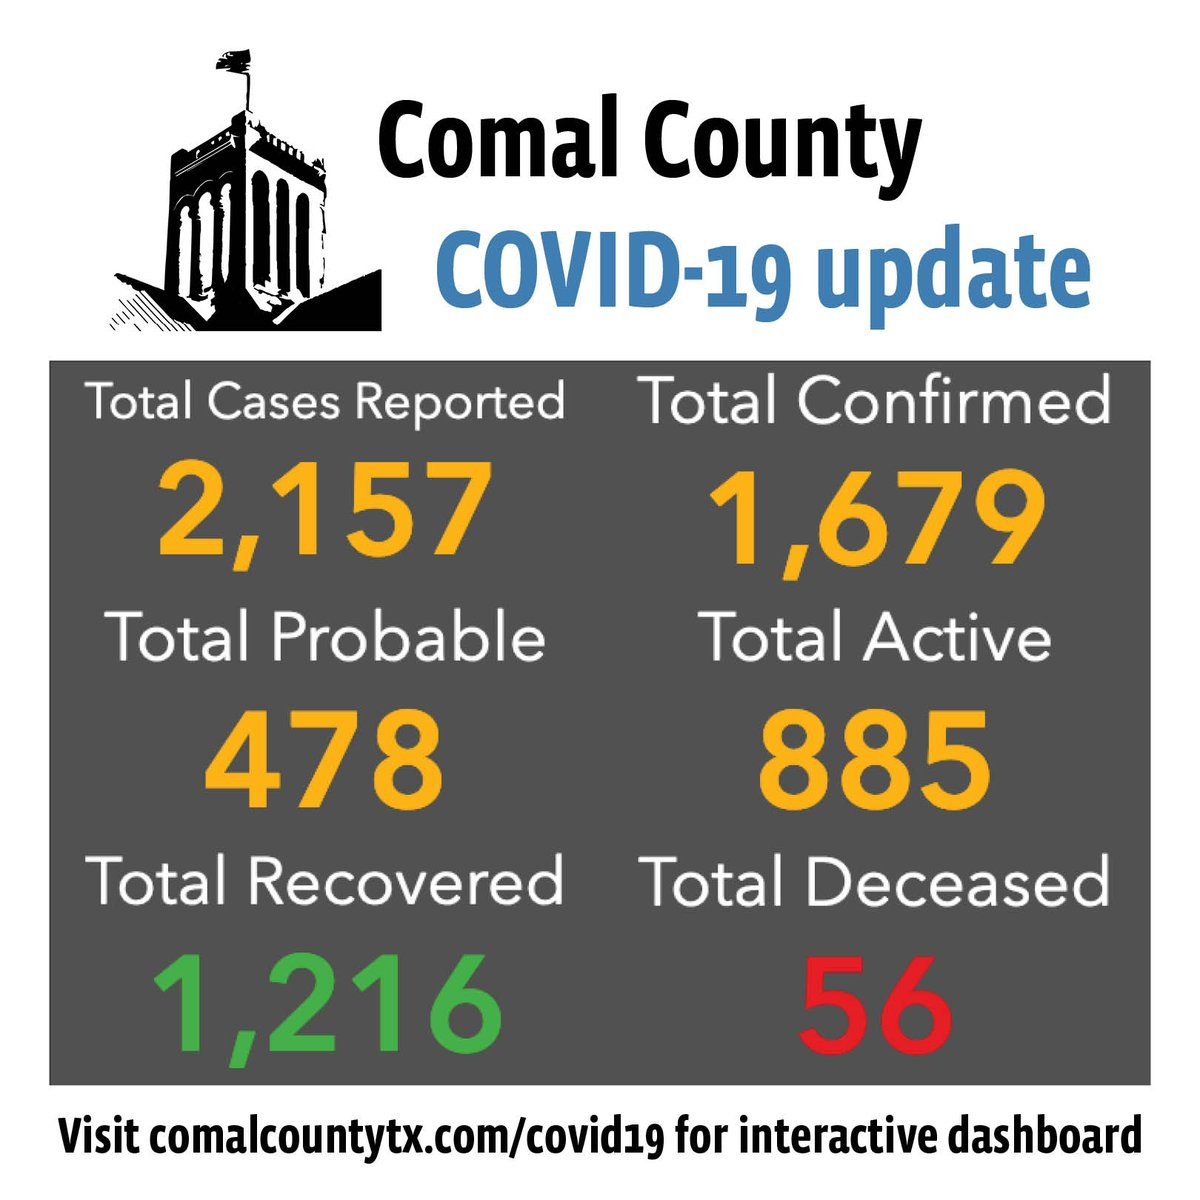 Comal County confirms two COVID-19 deaths, reports 13 new cases: